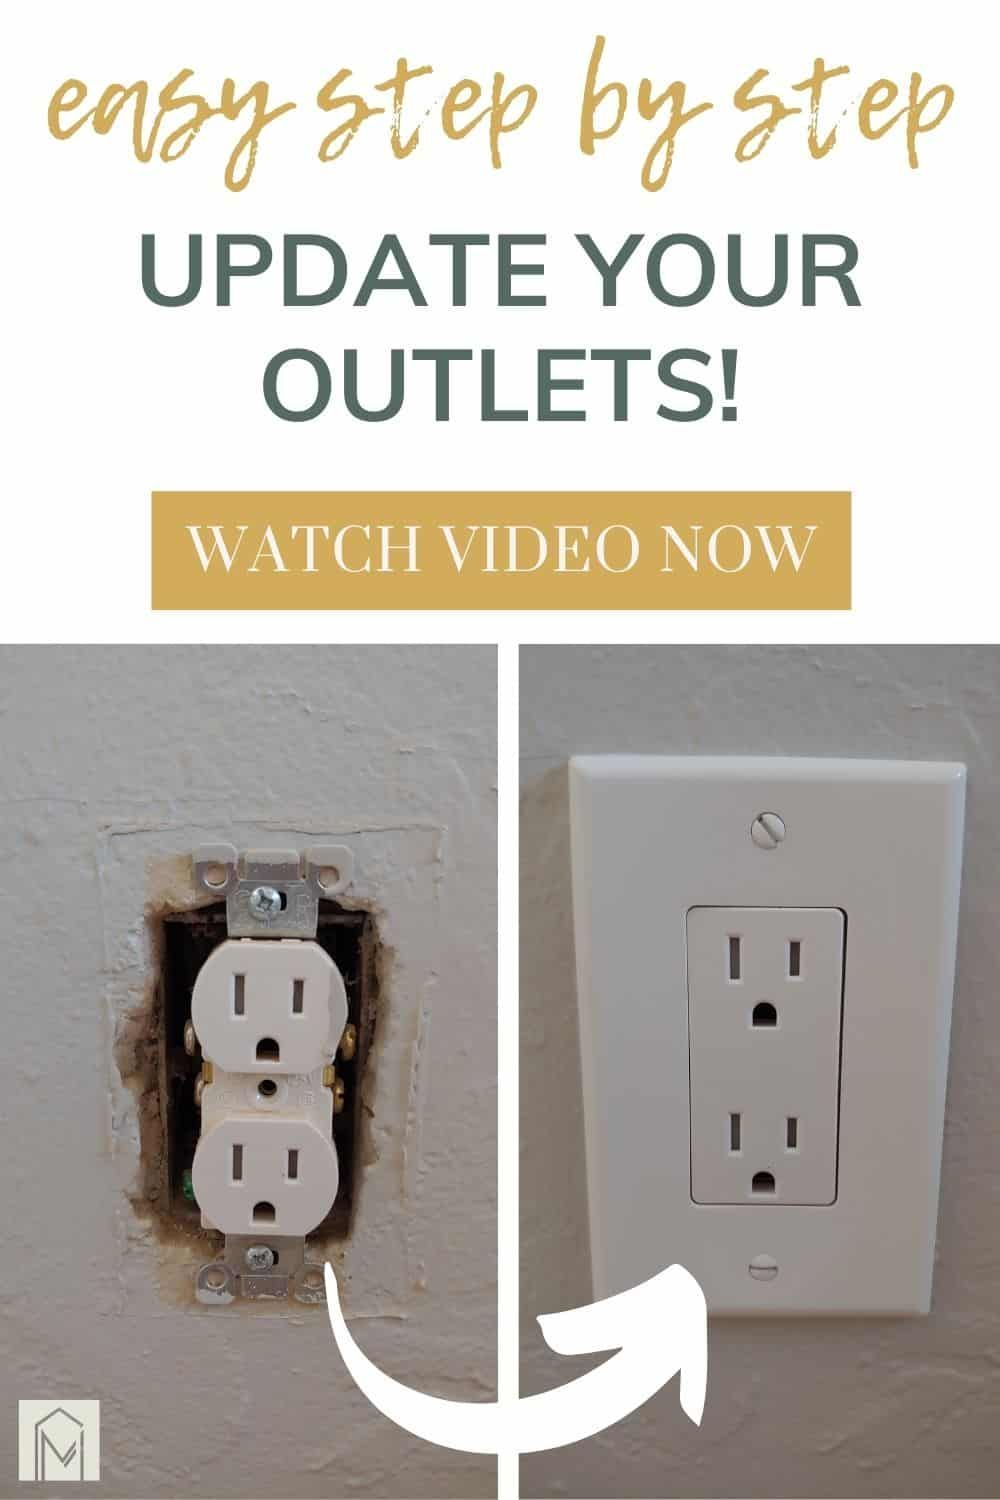 How To Change An Outlet Or Light Switch Video Making Manzanita Light Switch Switch Video Easy Tutorial